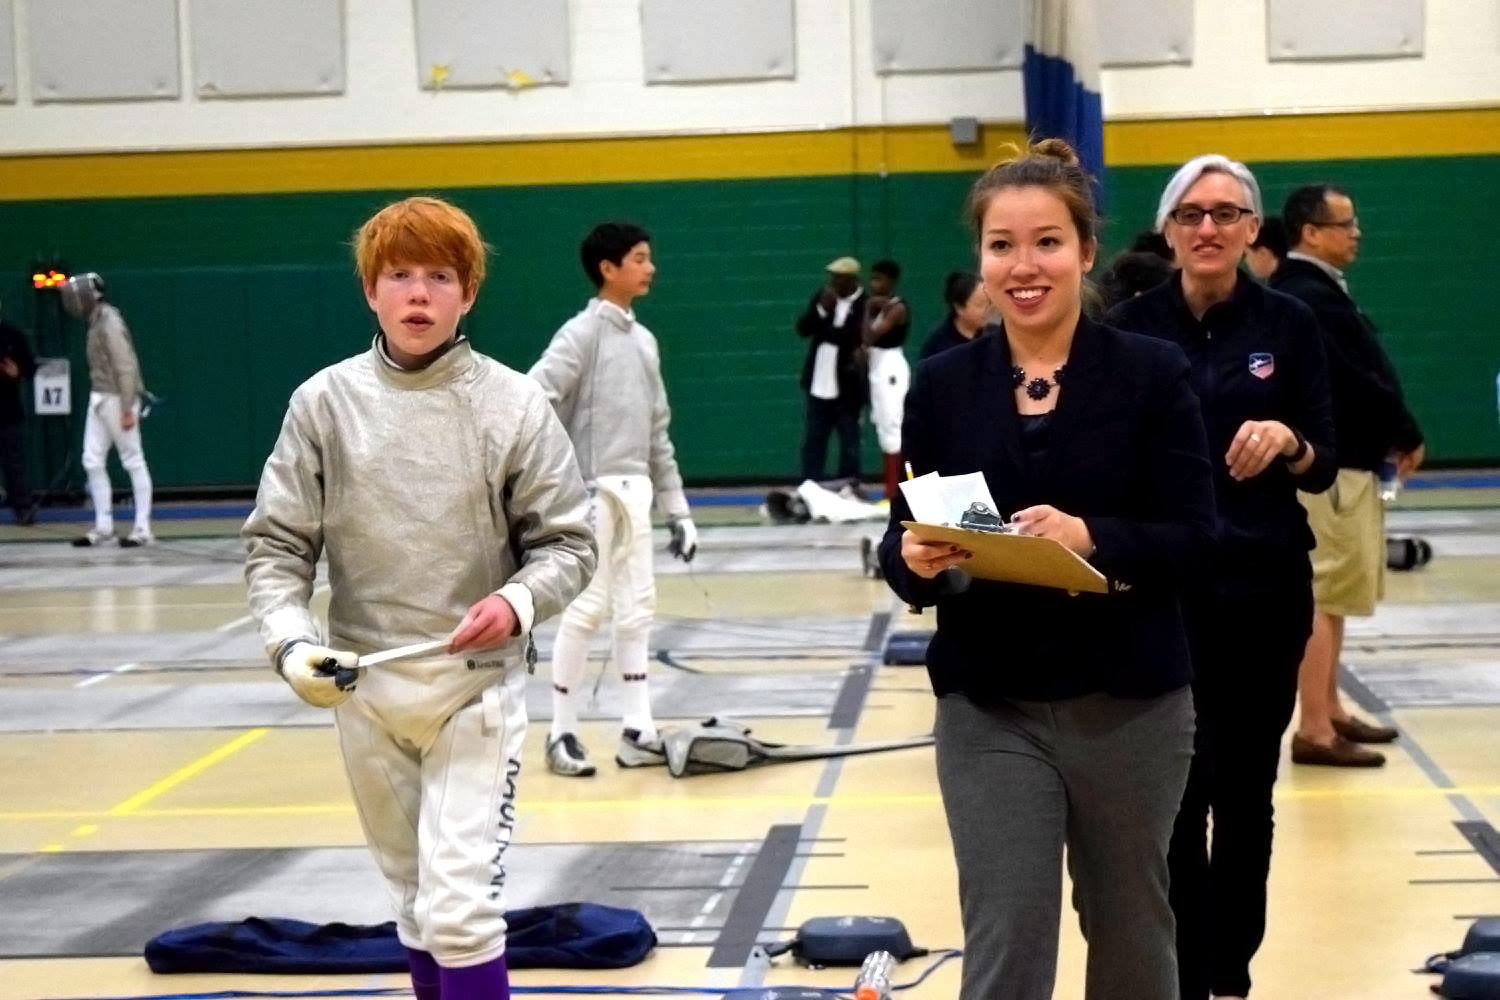 A middle-school crush led Kyono to the sport of fencing. She's now seeking to become an international-level referee.